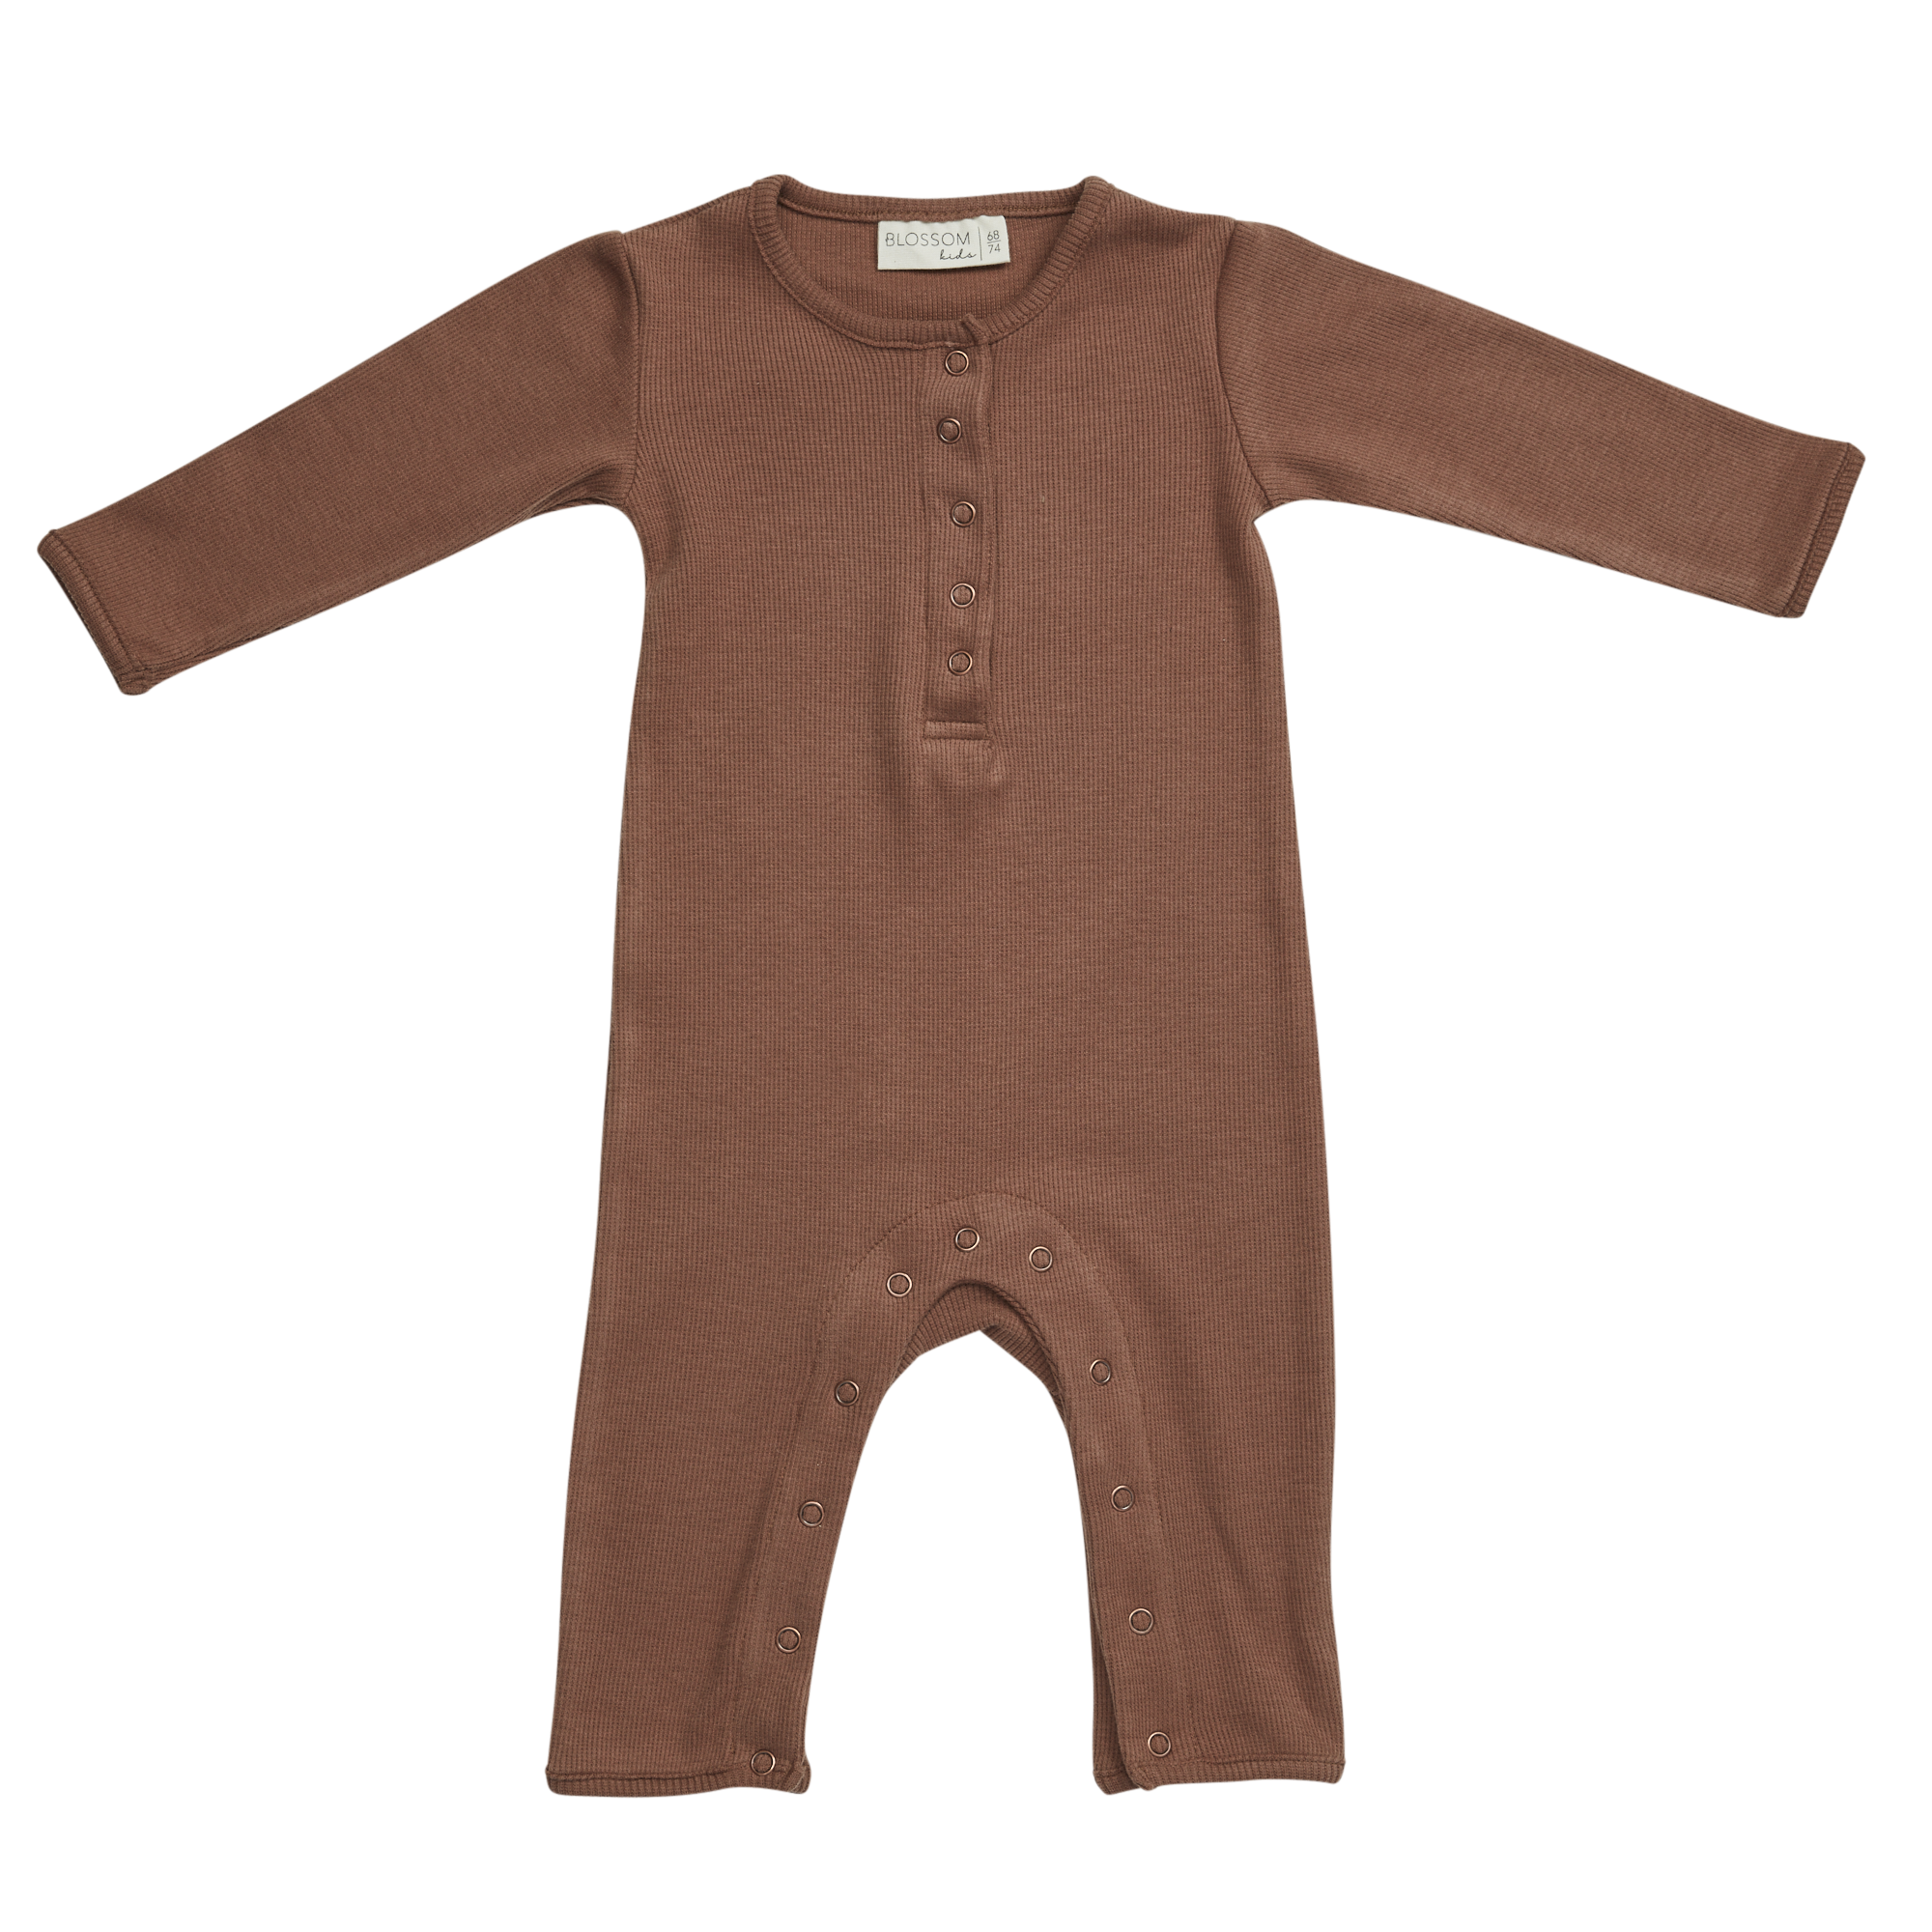 Blossom kids Playsuit - Smoked Hazelnut